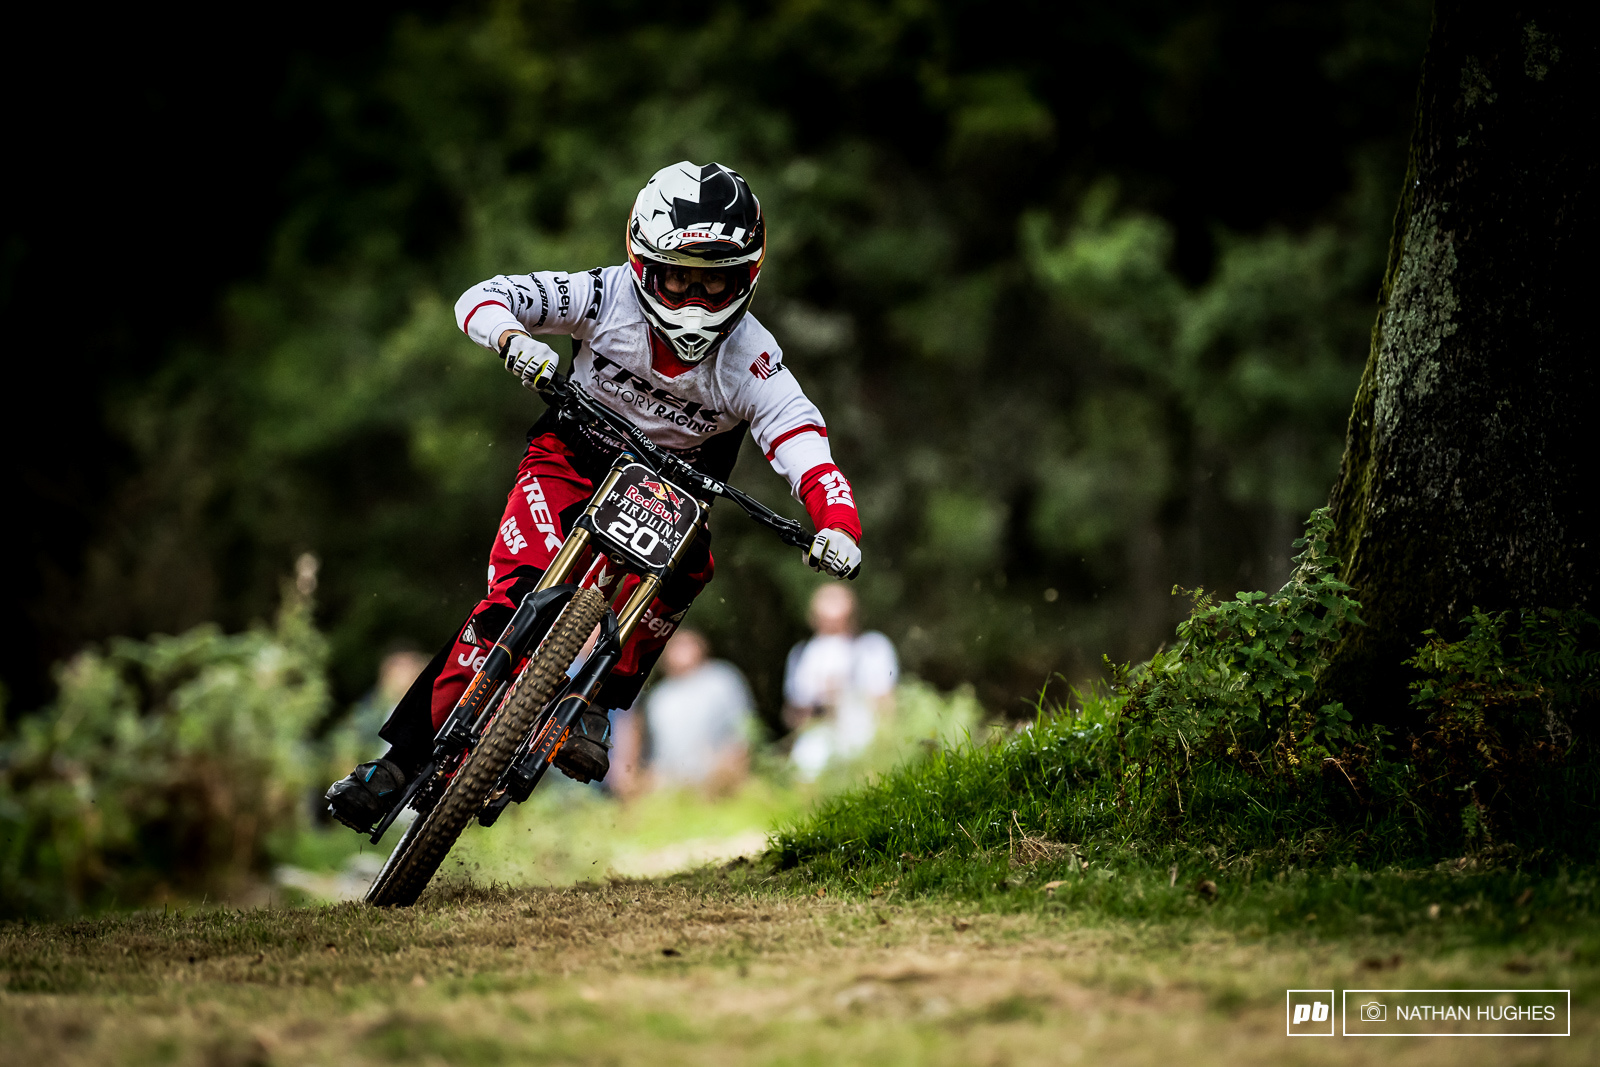 Taylor Vernon qualifed 4th and managed to get through without a single crash... Props to young Welshman.